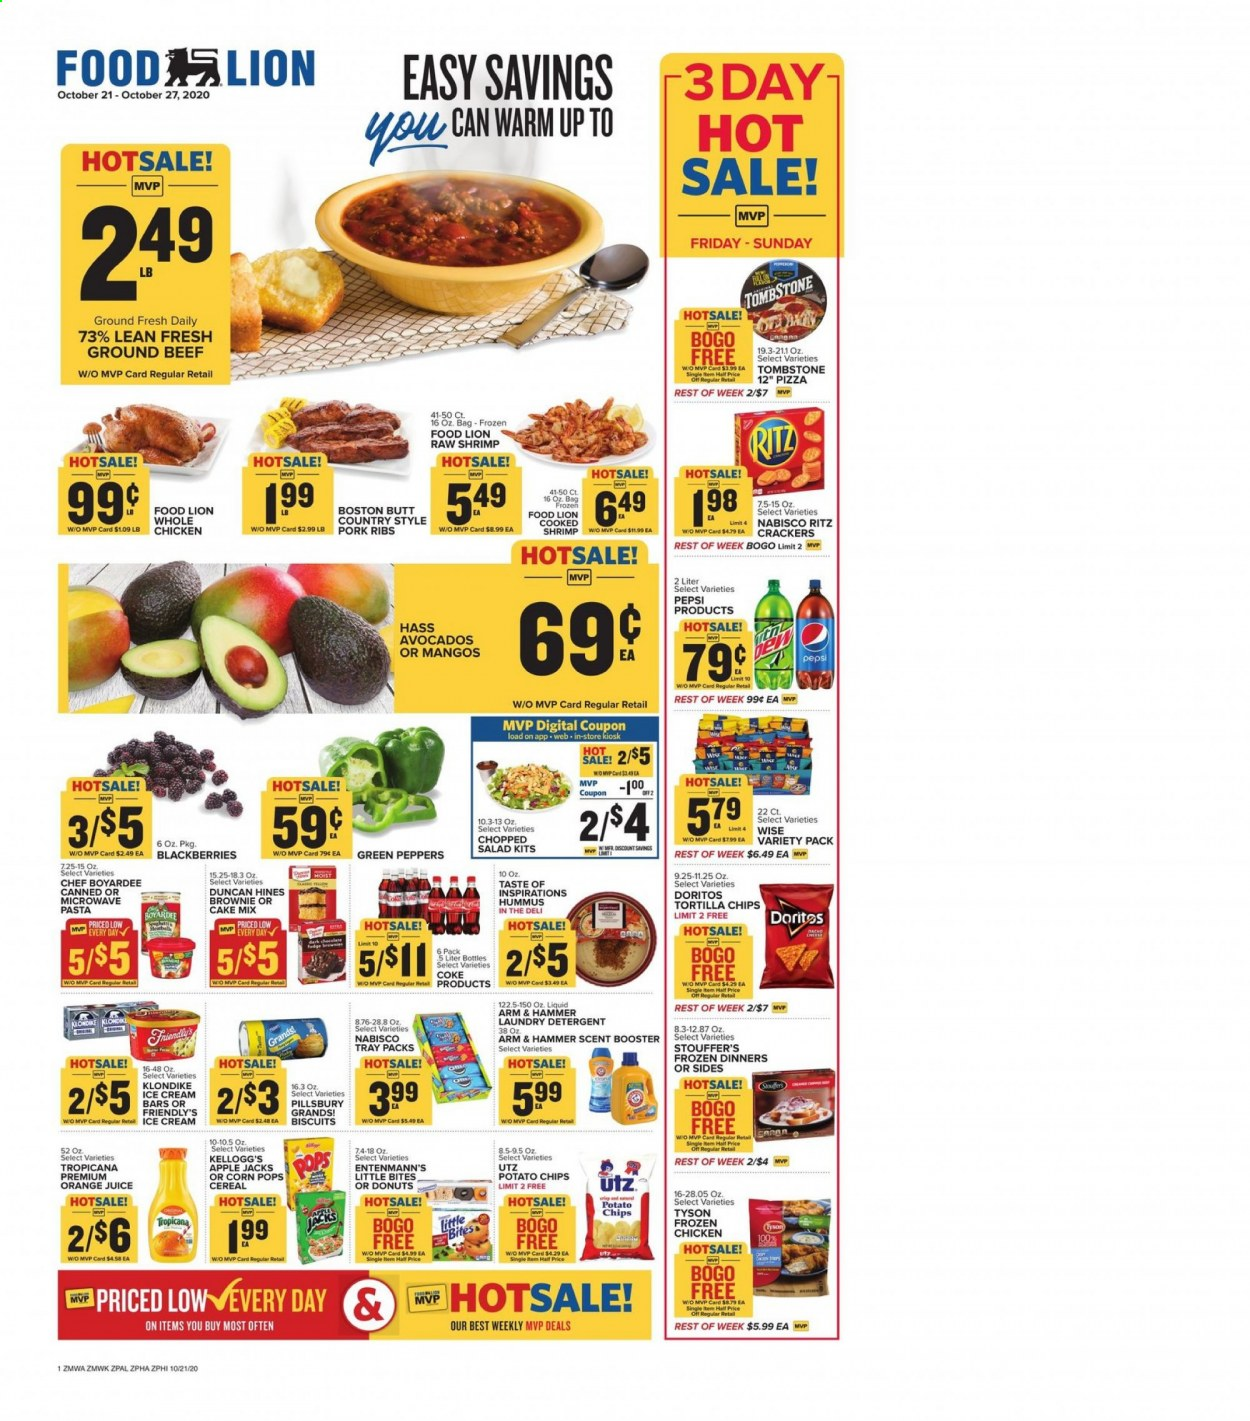 Food Lion Flyer - 10.21.2020 - 10.27.2020 - Sales products - apples, arm & hammer, avocado, bag, beef meat, biscuits, blackberries, cake mix, cereals, coca-cola, corn, crackers, detergent, doritos, frozen, fudge, ground beef, mango, microwave, shrimp, tortilla chips, tray, whole chicken, hummus, ice cream, ice cream bars, pizza, pork meat, pork ribs, potato chips, chicken, pepsi, orange juice, orange, chips, juice, cake, donuts, hammer, cereal, pasta, ritz, salad, ribs, bites, liquid, peppers, brownie, laundry detergent, apple, shrimps, donut. Page 1.